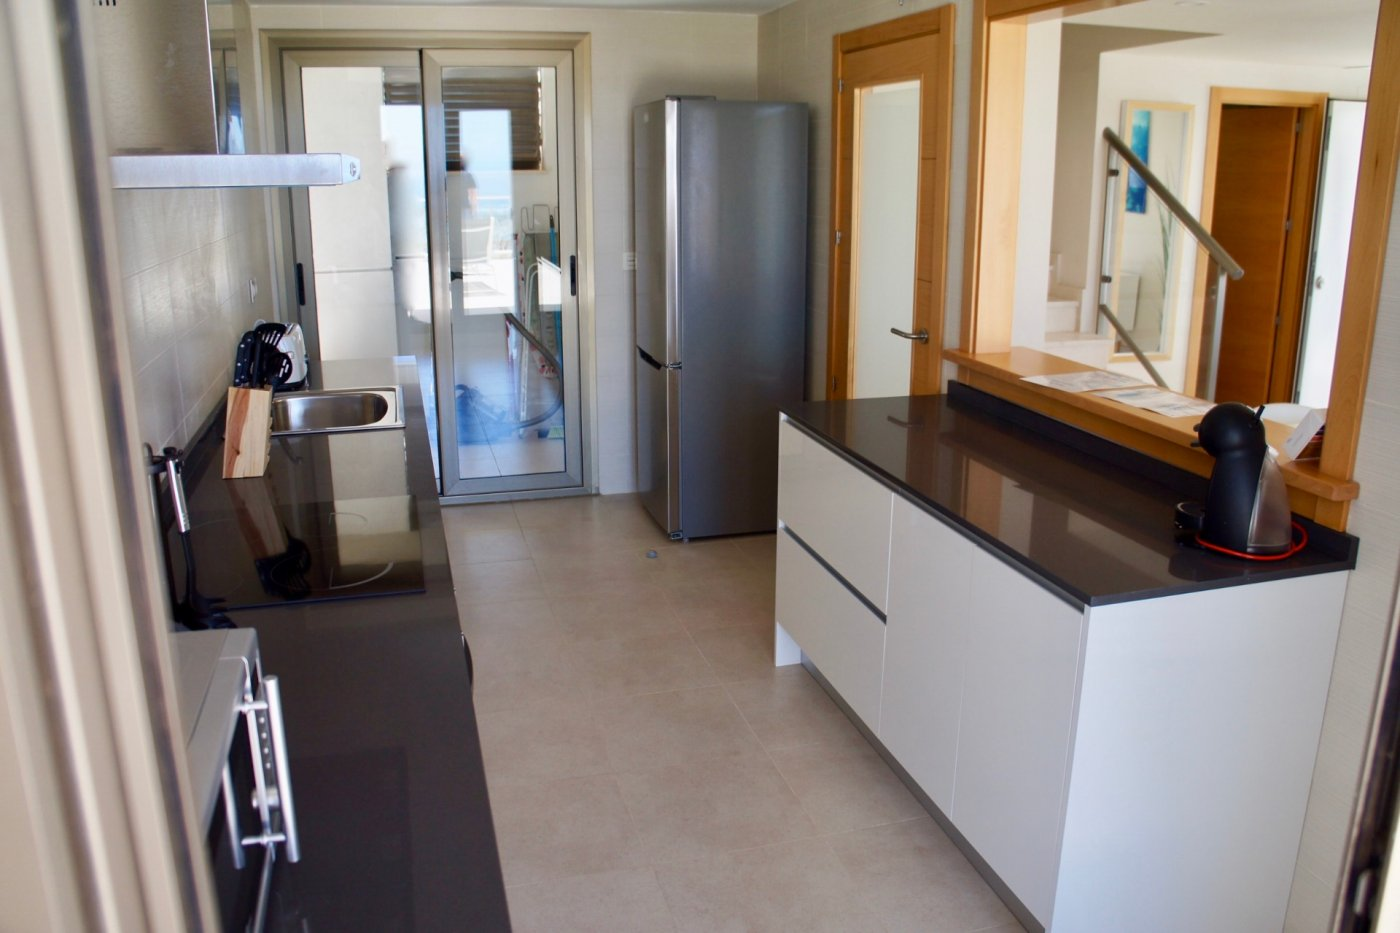 Gallery Image 8 of Big south facing 3 bed, 2 bath apartment with lovely views and 75 m2 terrassesolarium.